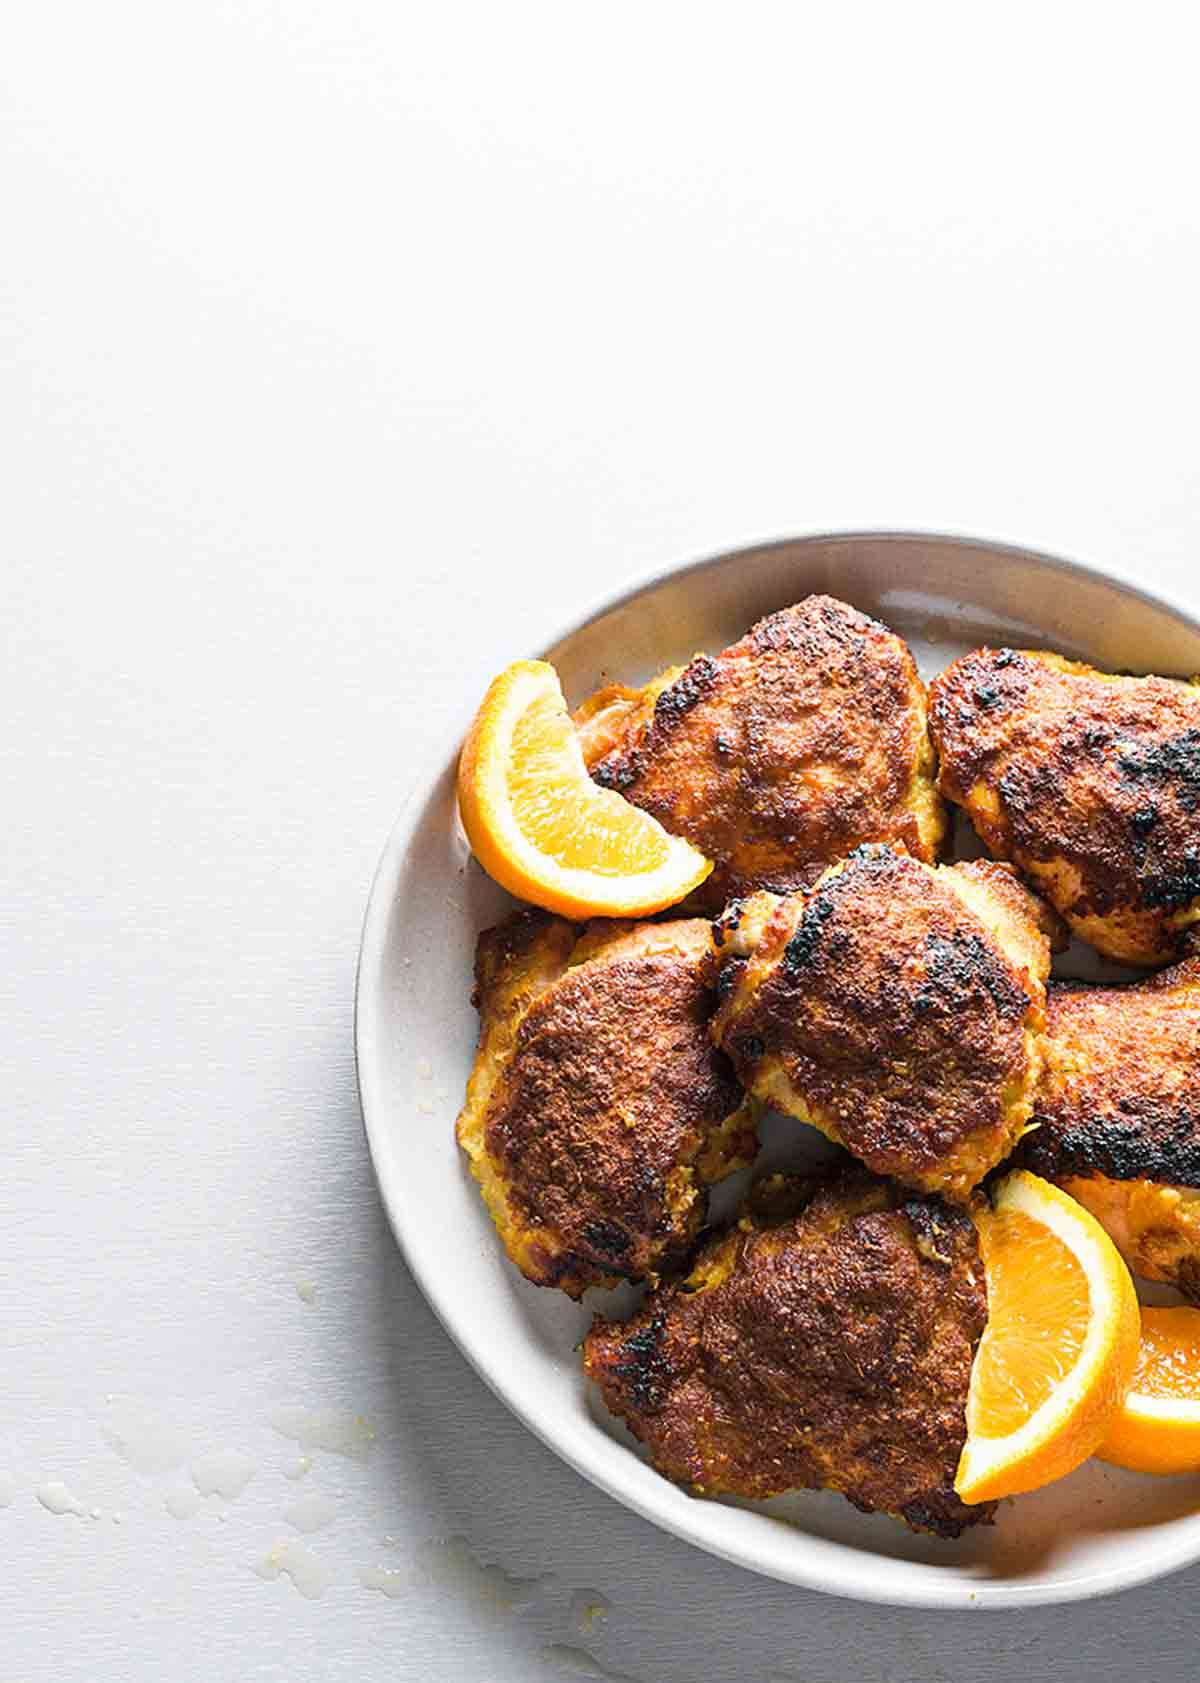 These orange ginger chicken thighs are an easy meal made by marinating chicken in a mixture of ginger, oranges, and soy sauce, then roasting to crispy-skinned perfection.